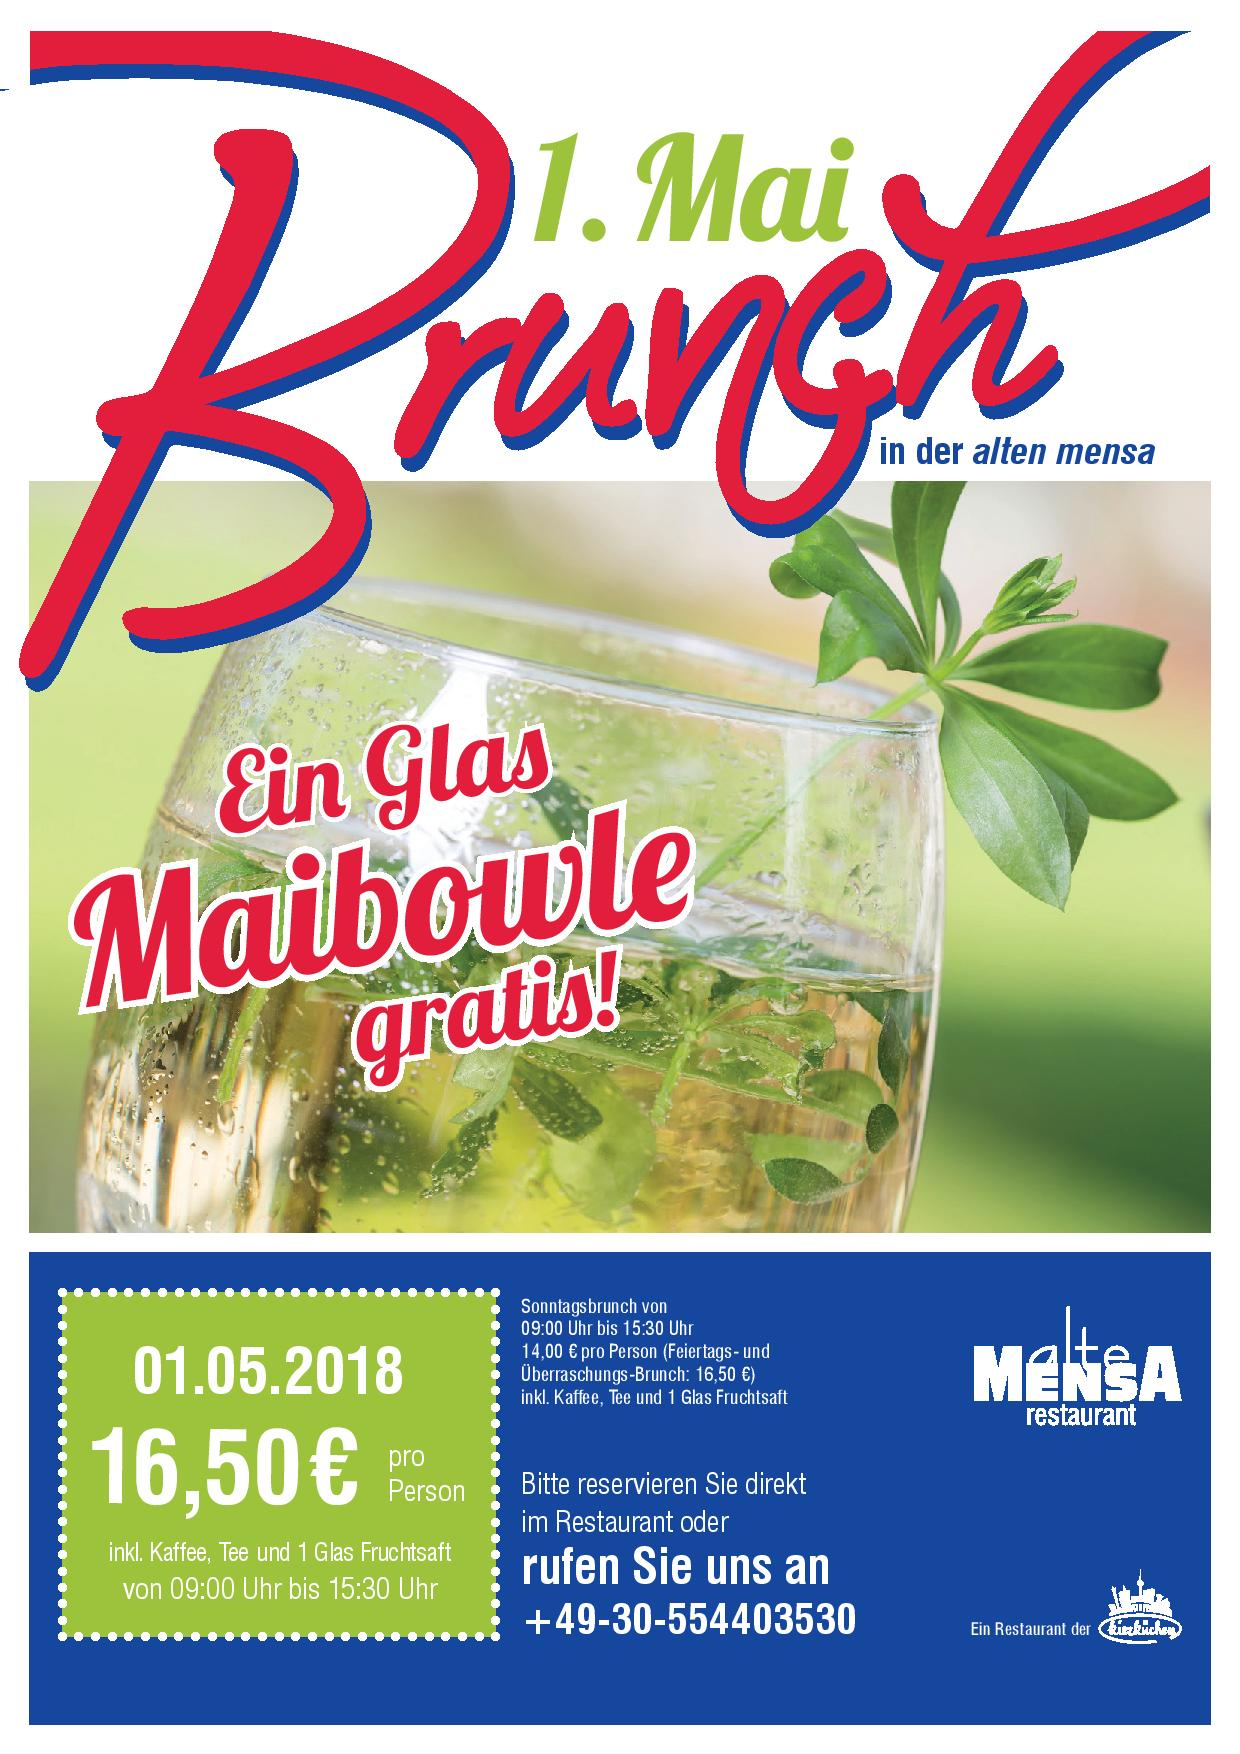 1. Mai Brunch - alte mensa